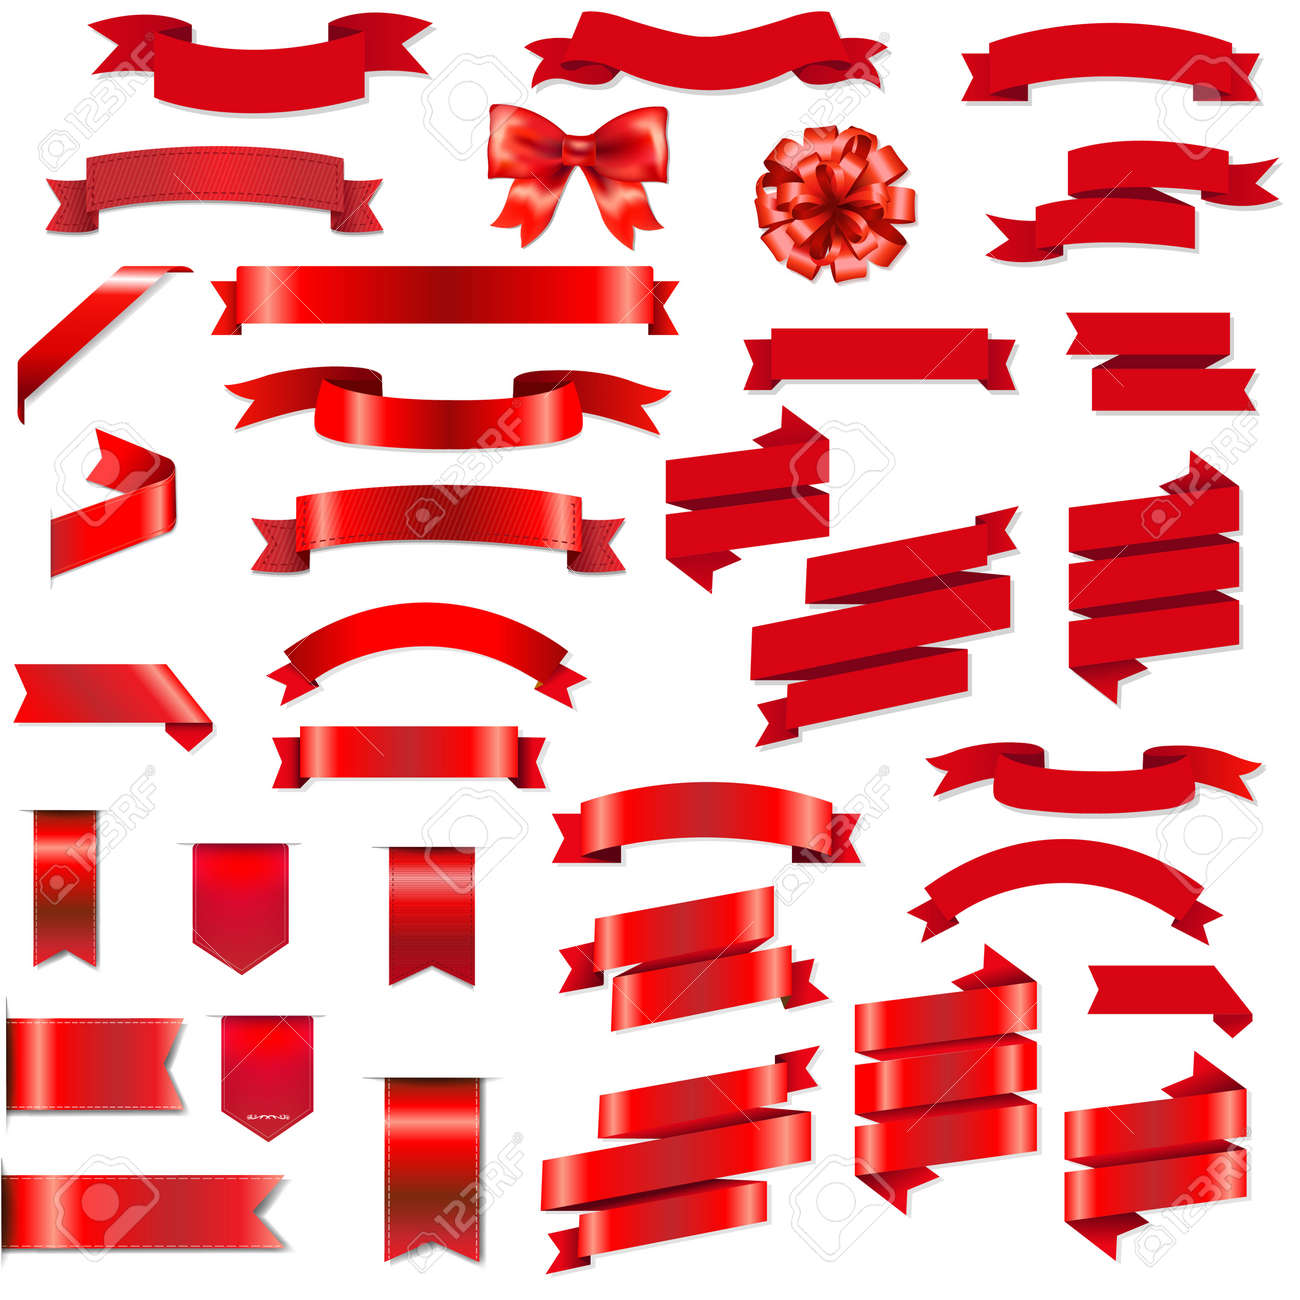 Red Ribbons And Bow Set With Gradient Mesh, Vector Illustration - 57247564